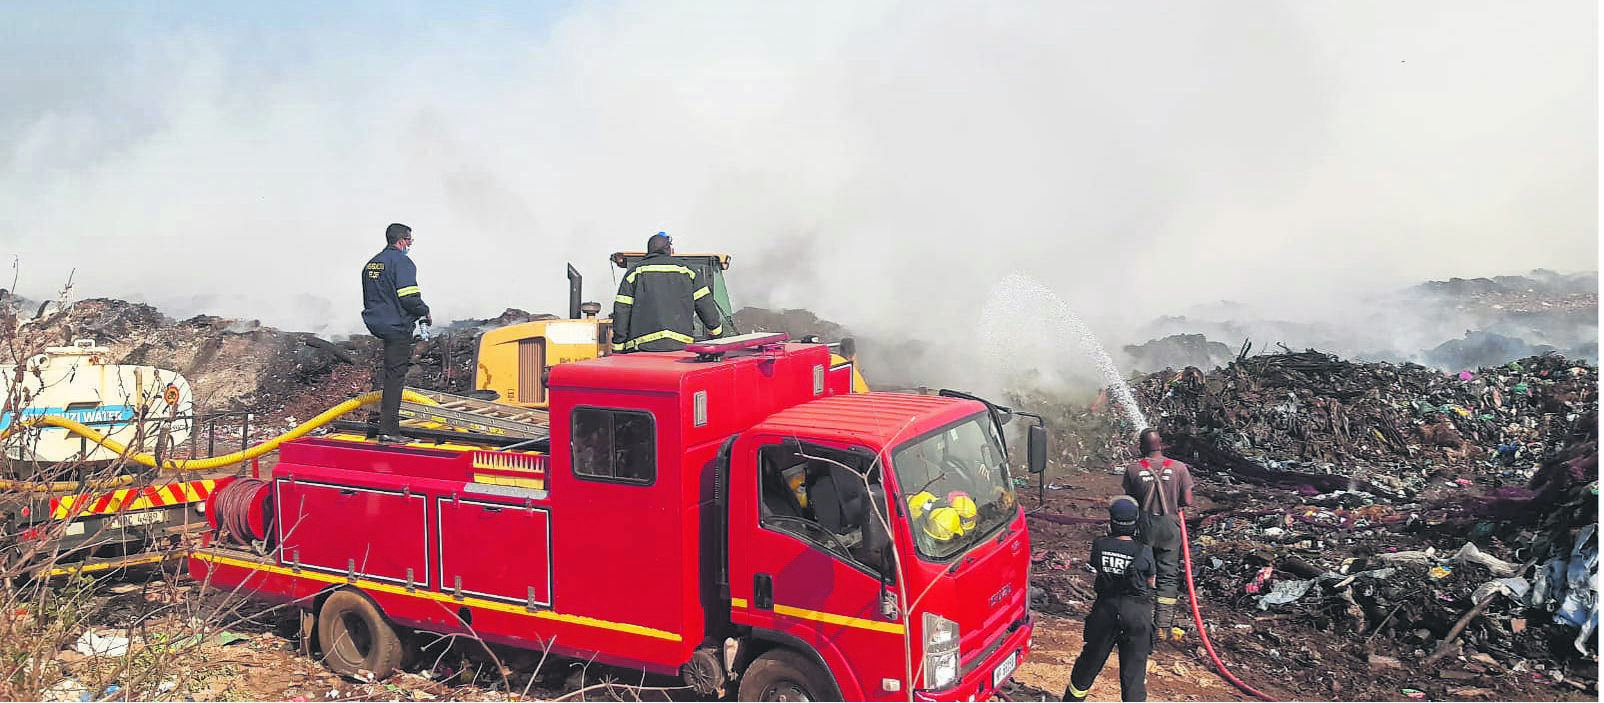 The Working on Fire KZN team has joined the battle to contain the New England Road Landfill fire. PHOTO: WOF KZN